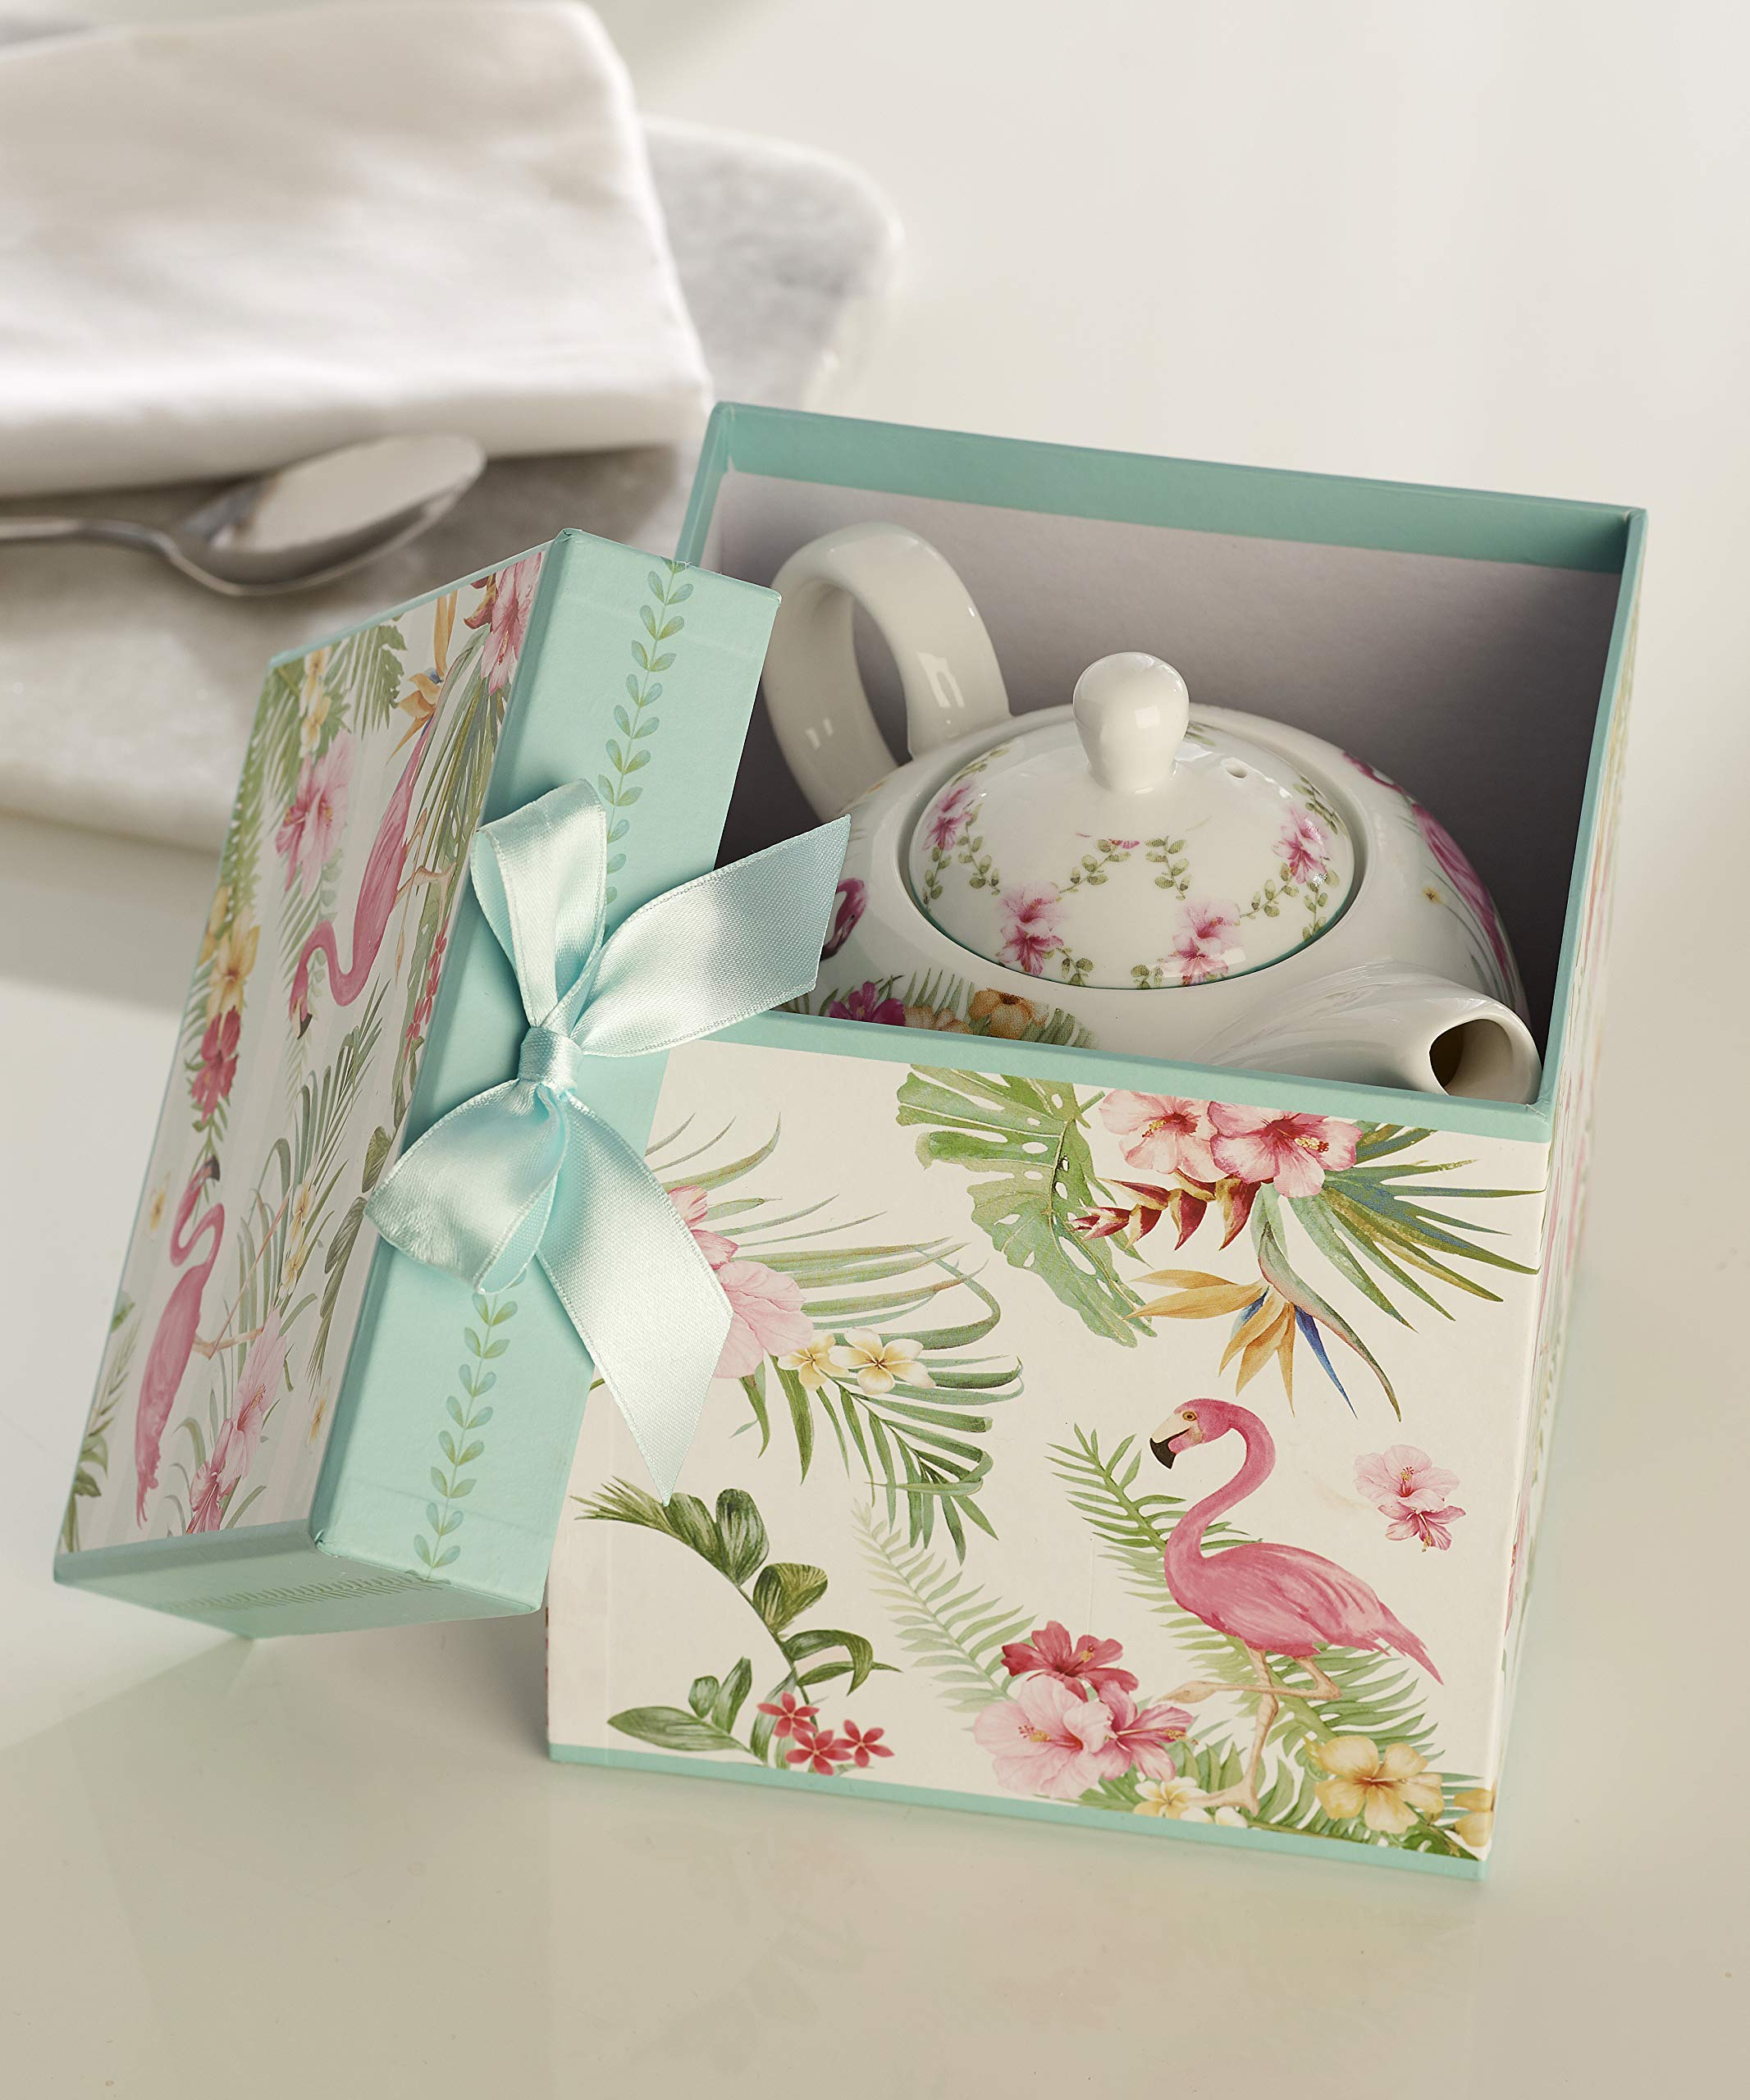 Giftcraft Bone China Tea Set for One in Gift Box, Flamingo Design